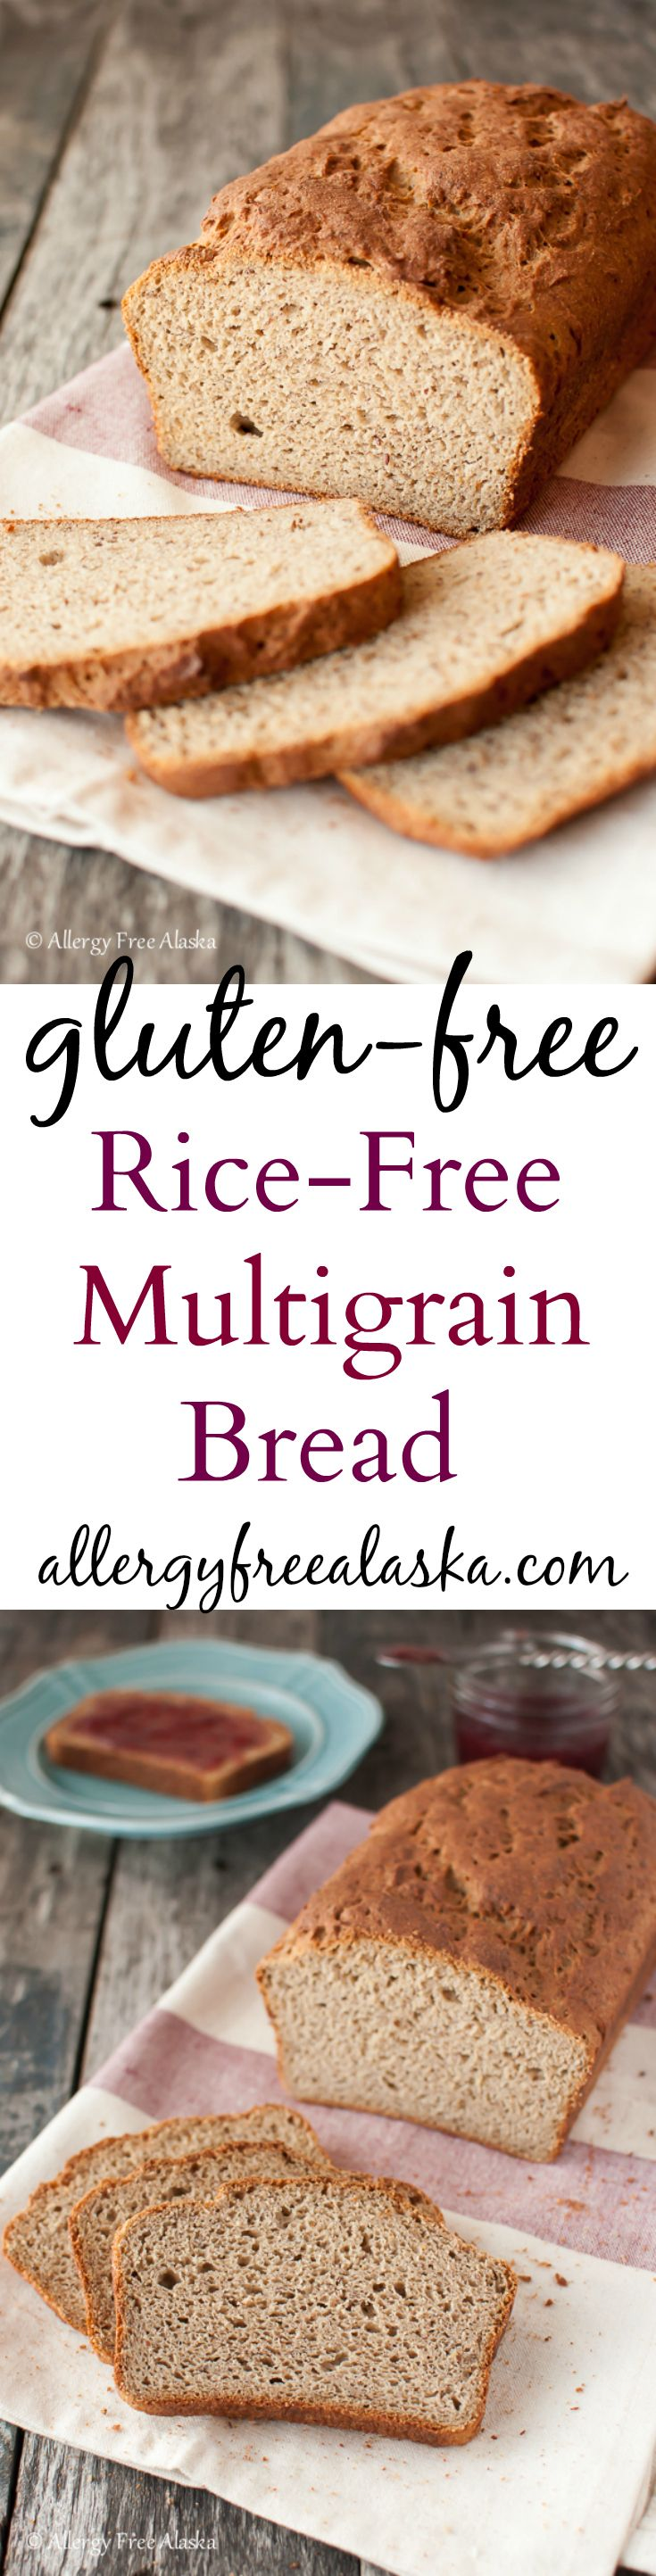 Gluten Free Rice Free Multigrain Bread Recipe from Allergy Free Alaska